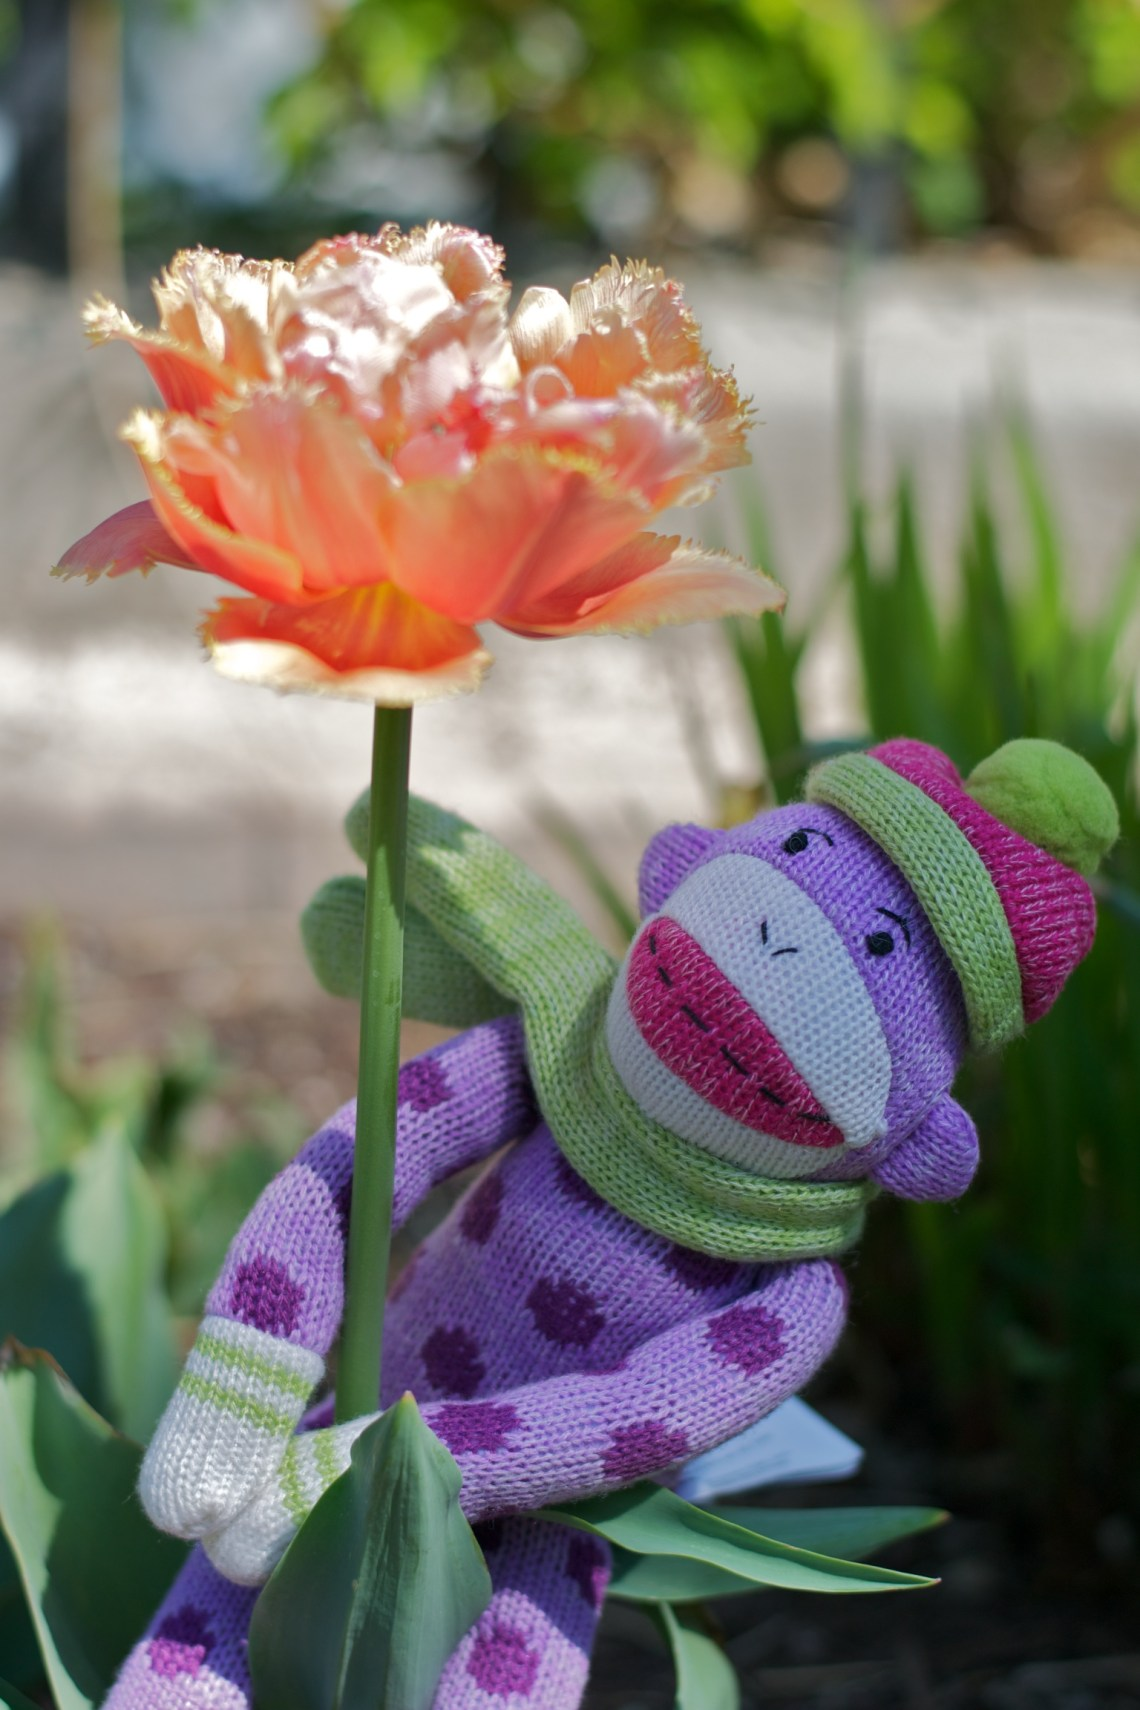 Sock Monkey Hugs a Flower